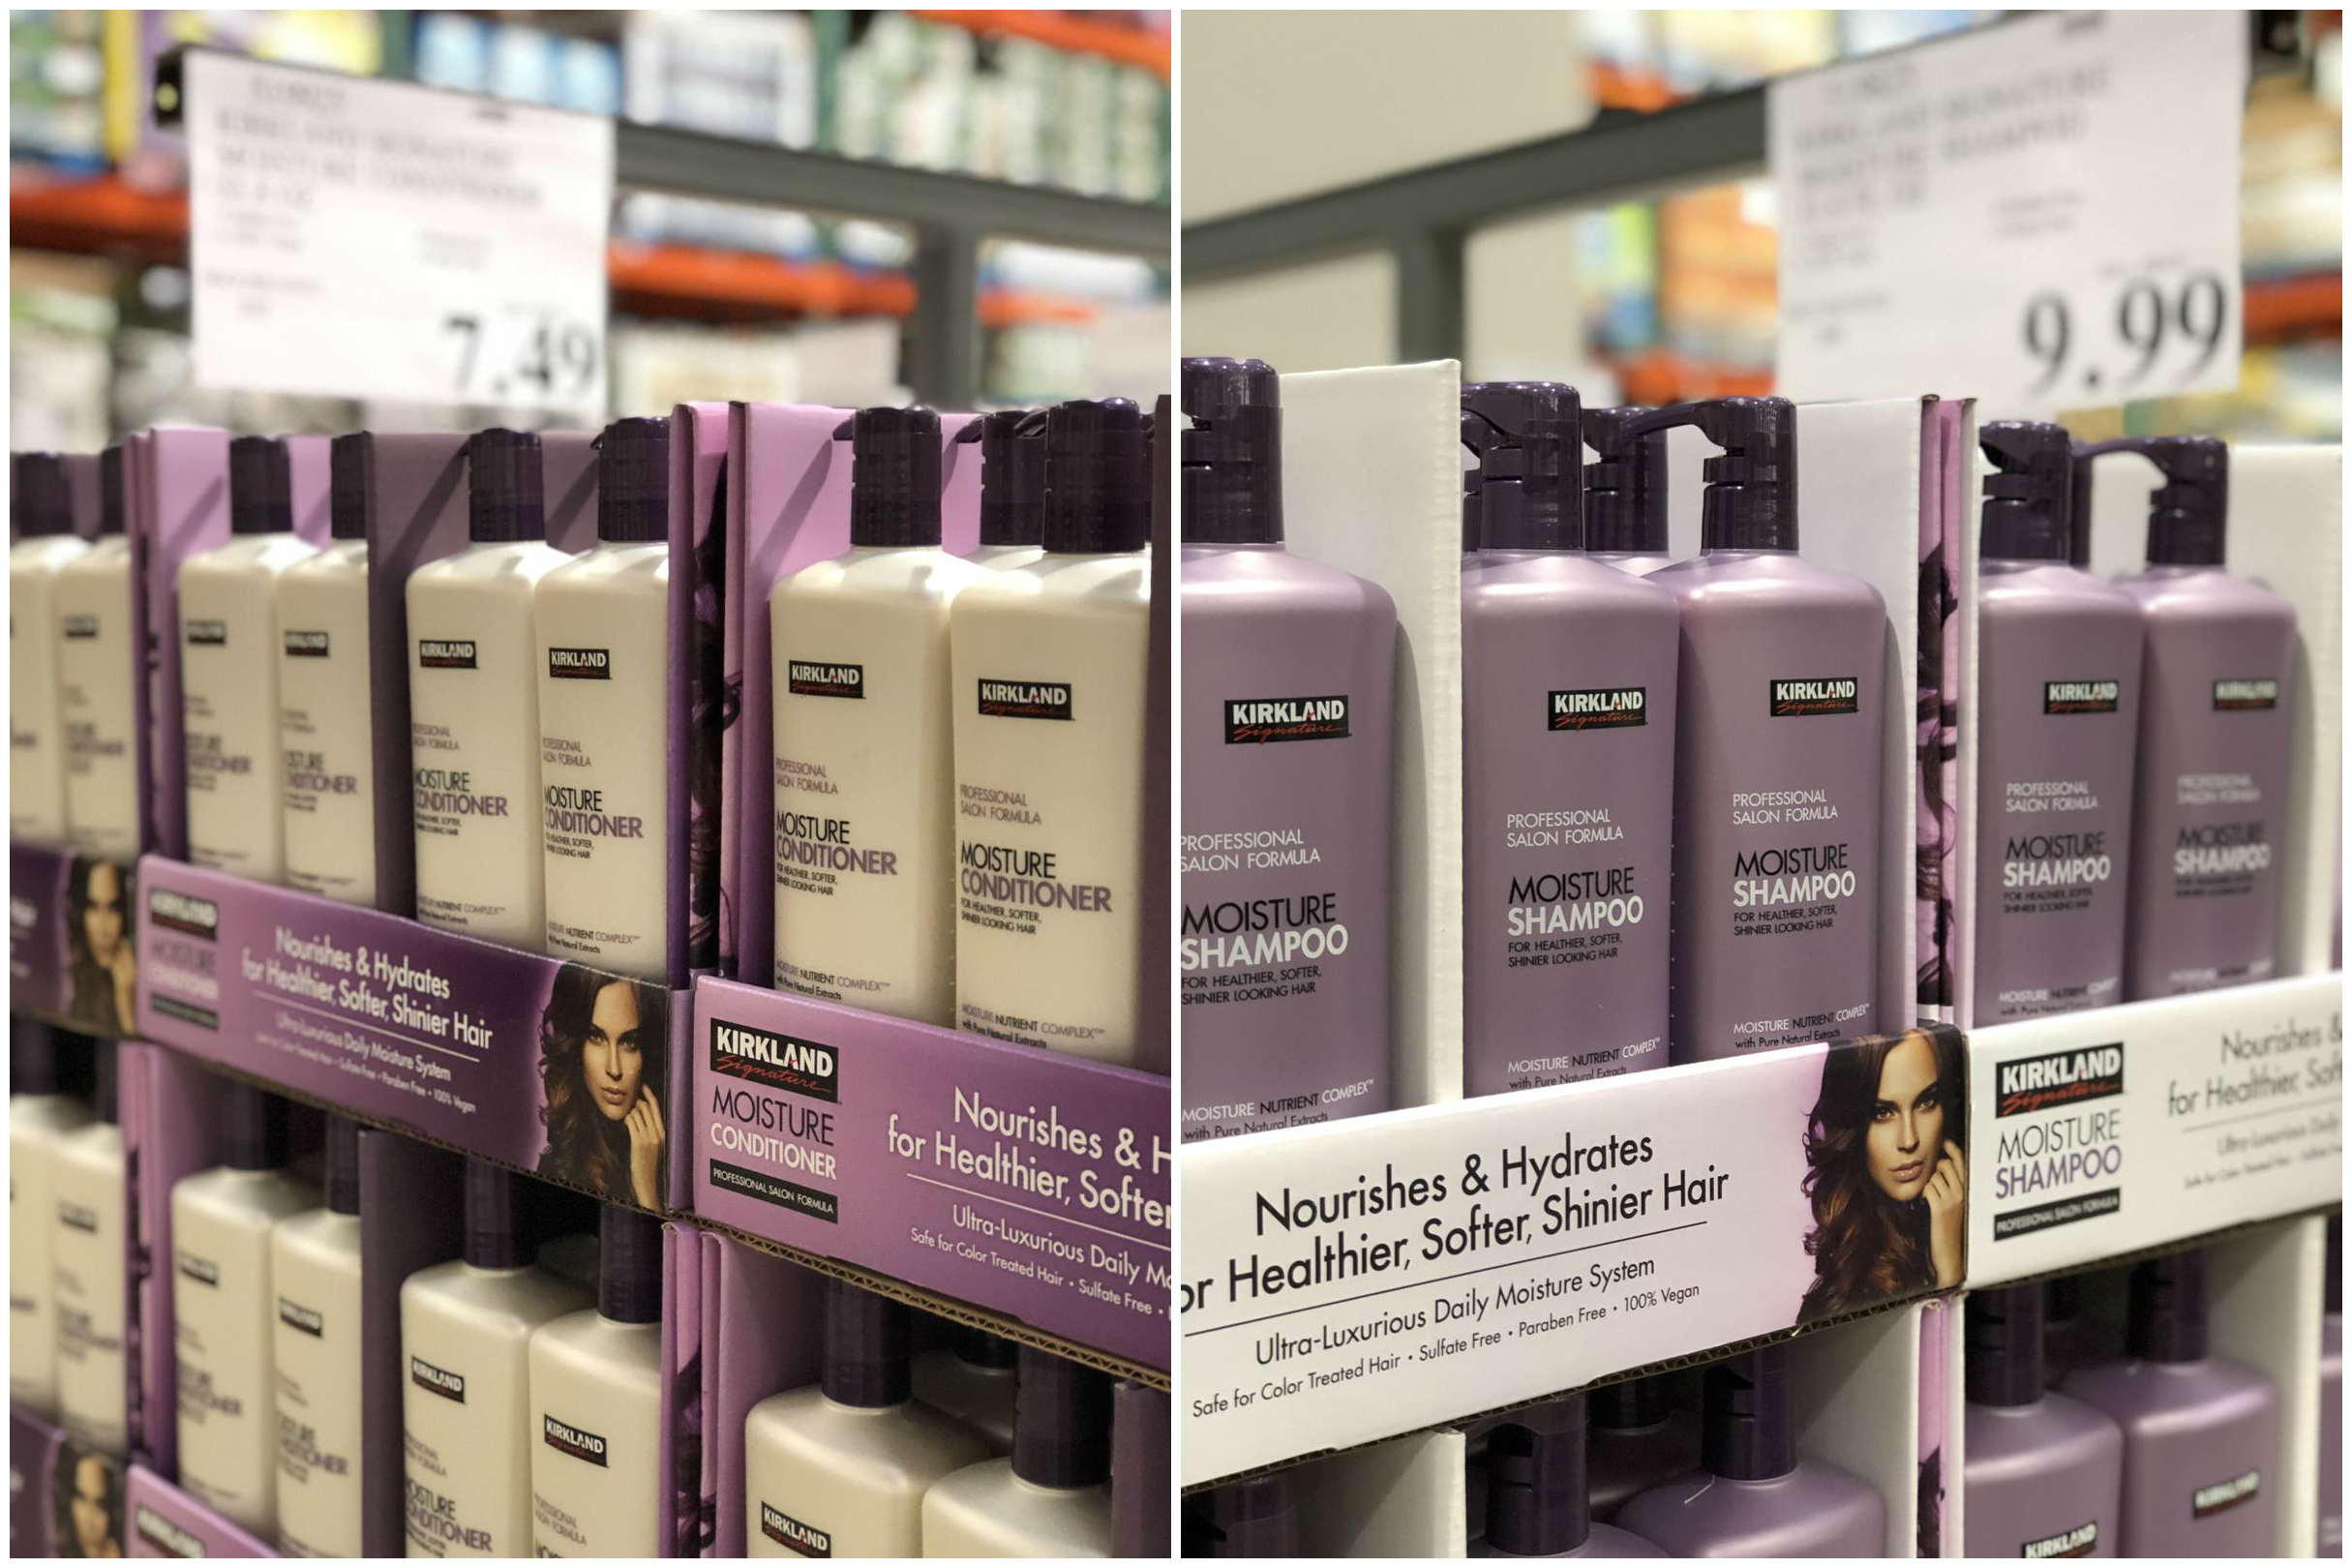 name brands sometimes make costco items, like this Kirkland Signature haircare